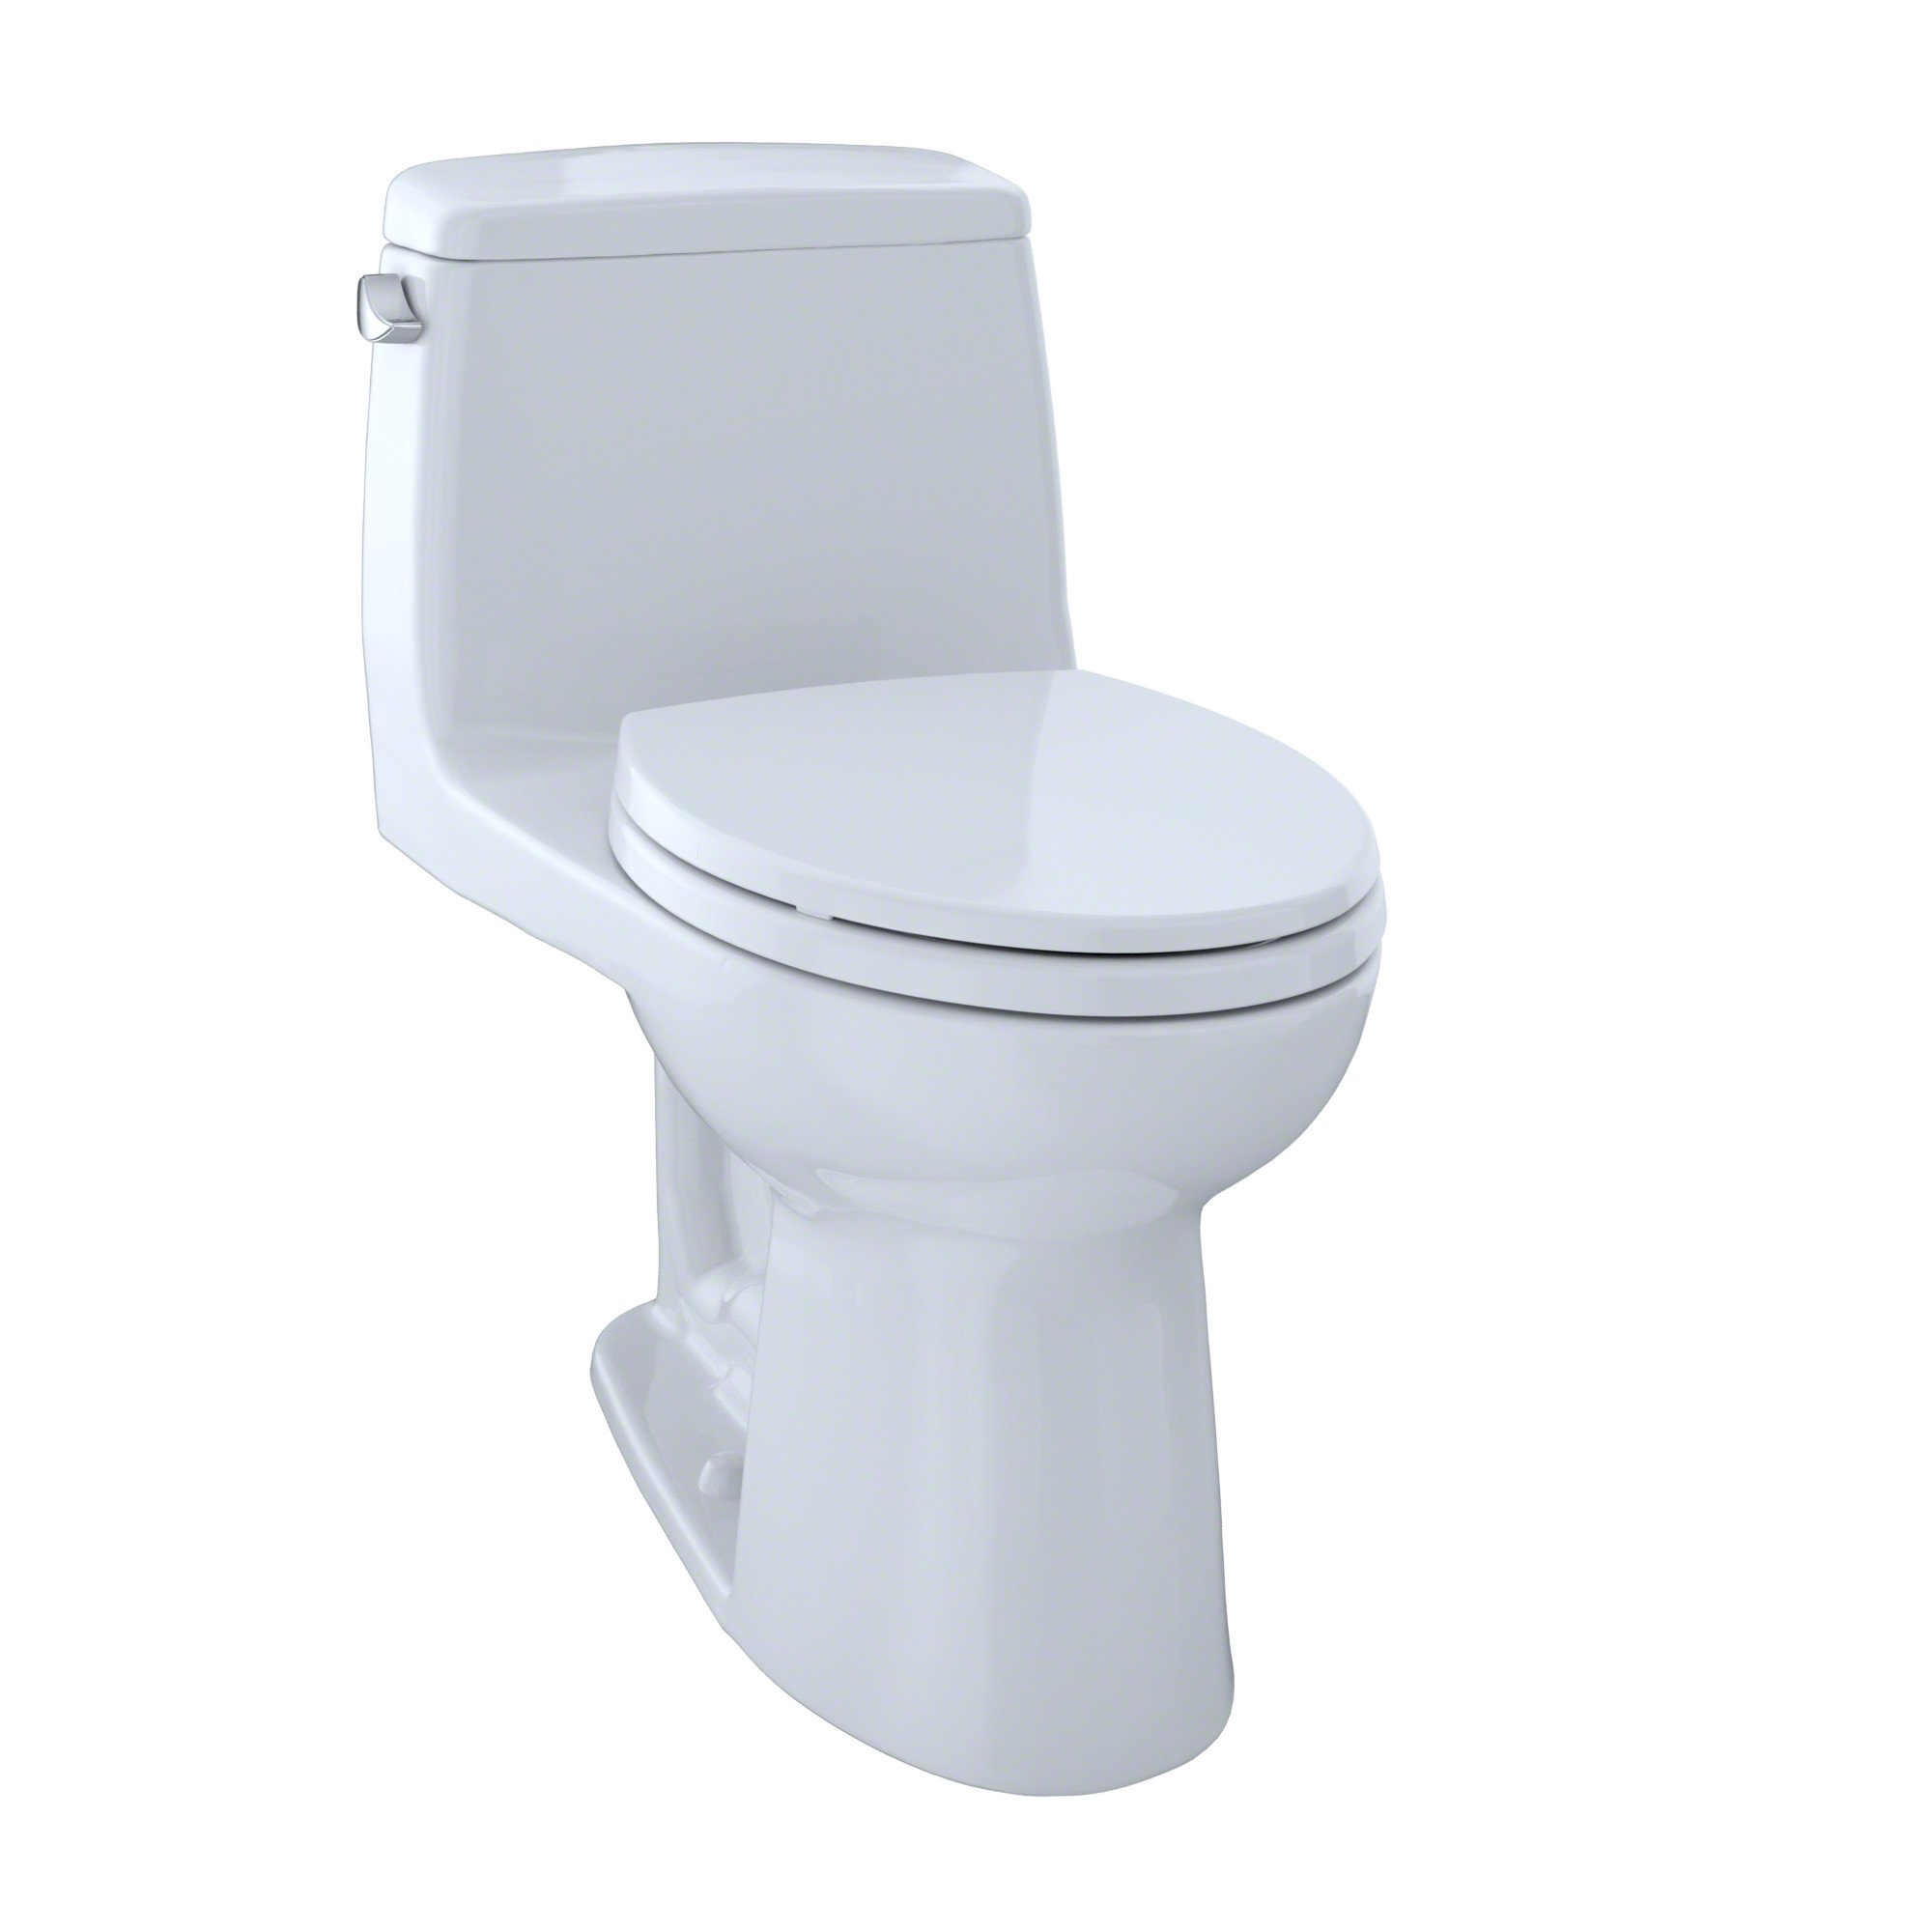 TOTO MS854114#01 Ultimate Elongated One Piece Toilet, Cotton White by TOTO